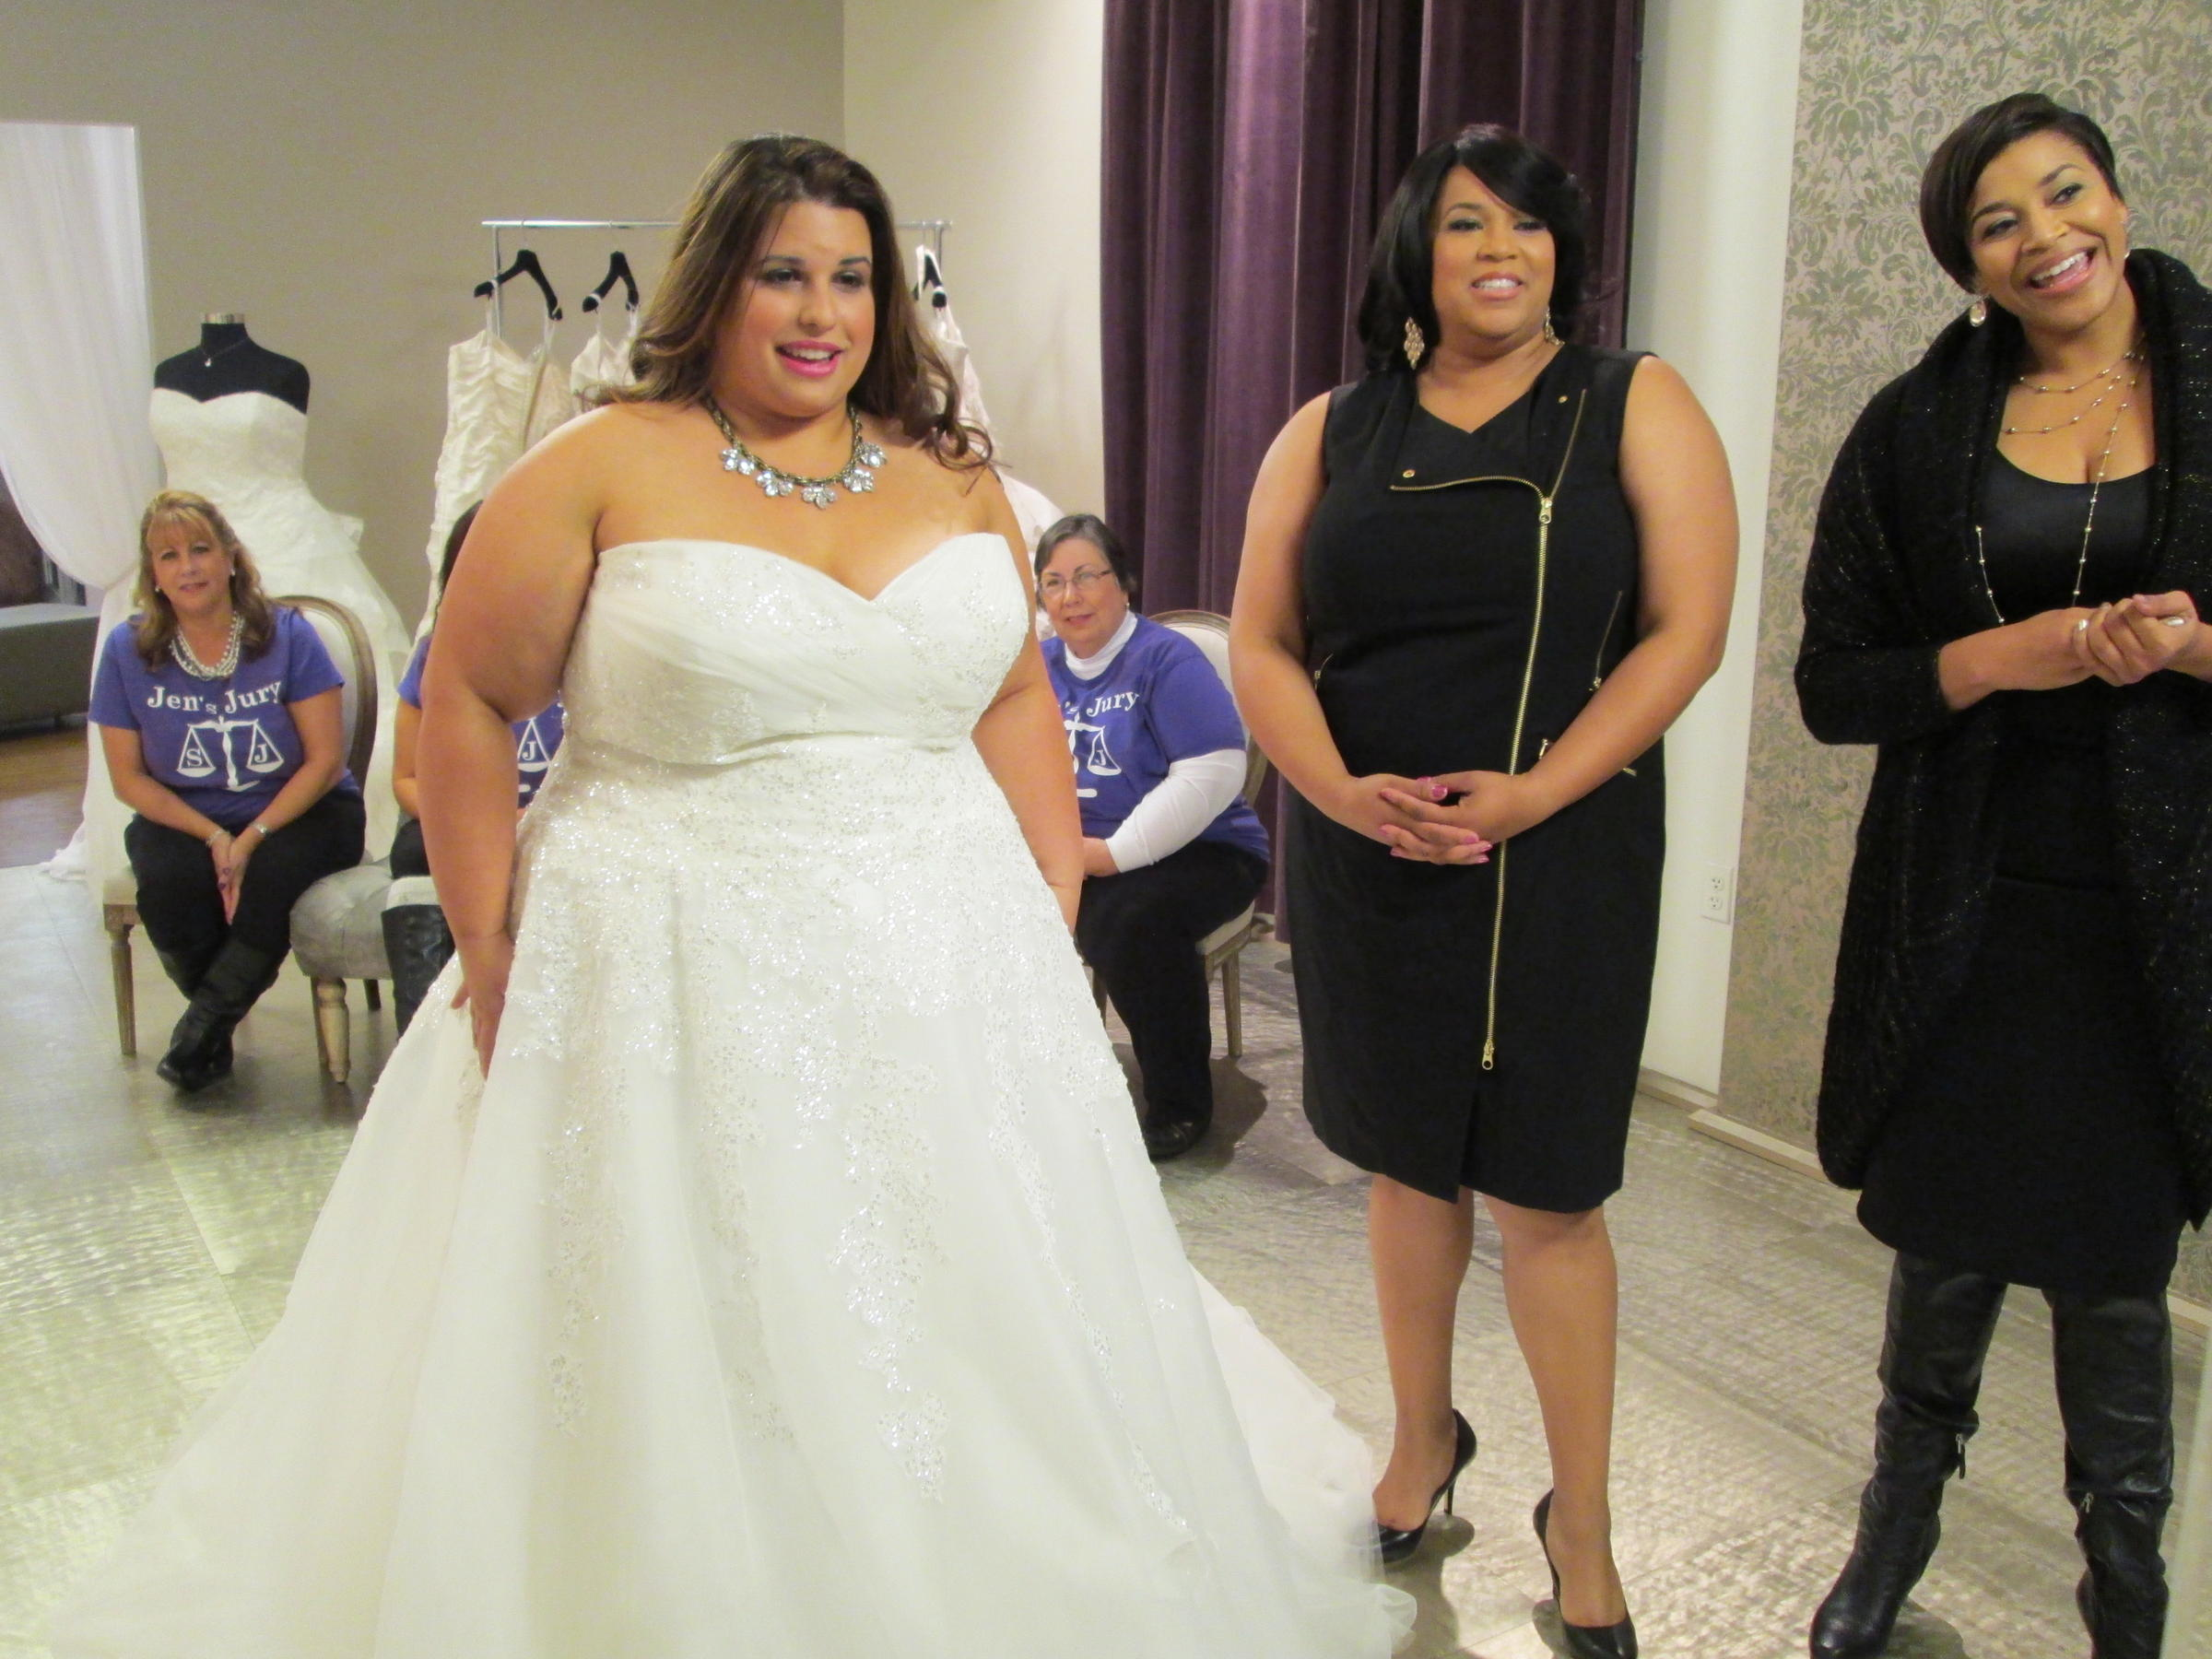 stars of tlc's 'curvy brides': all curves are beautiful | new